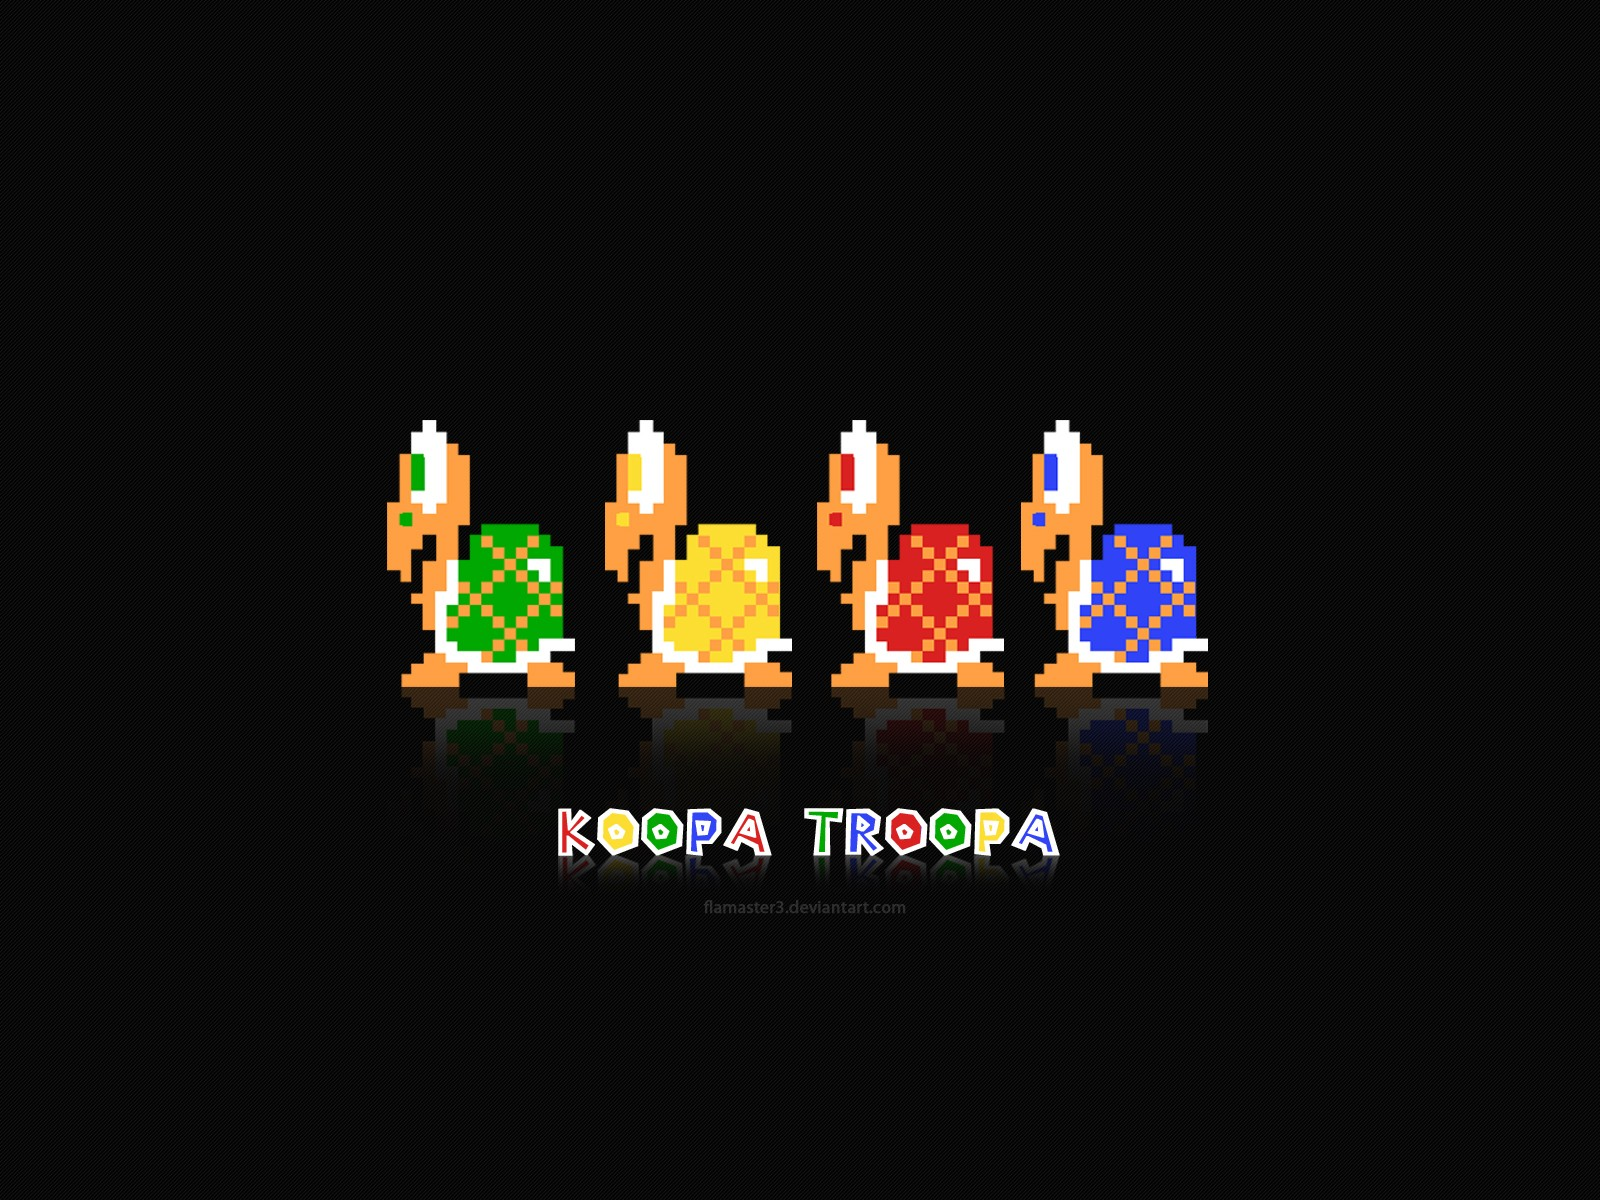 nes game console retro games koopa troopa #oYIP